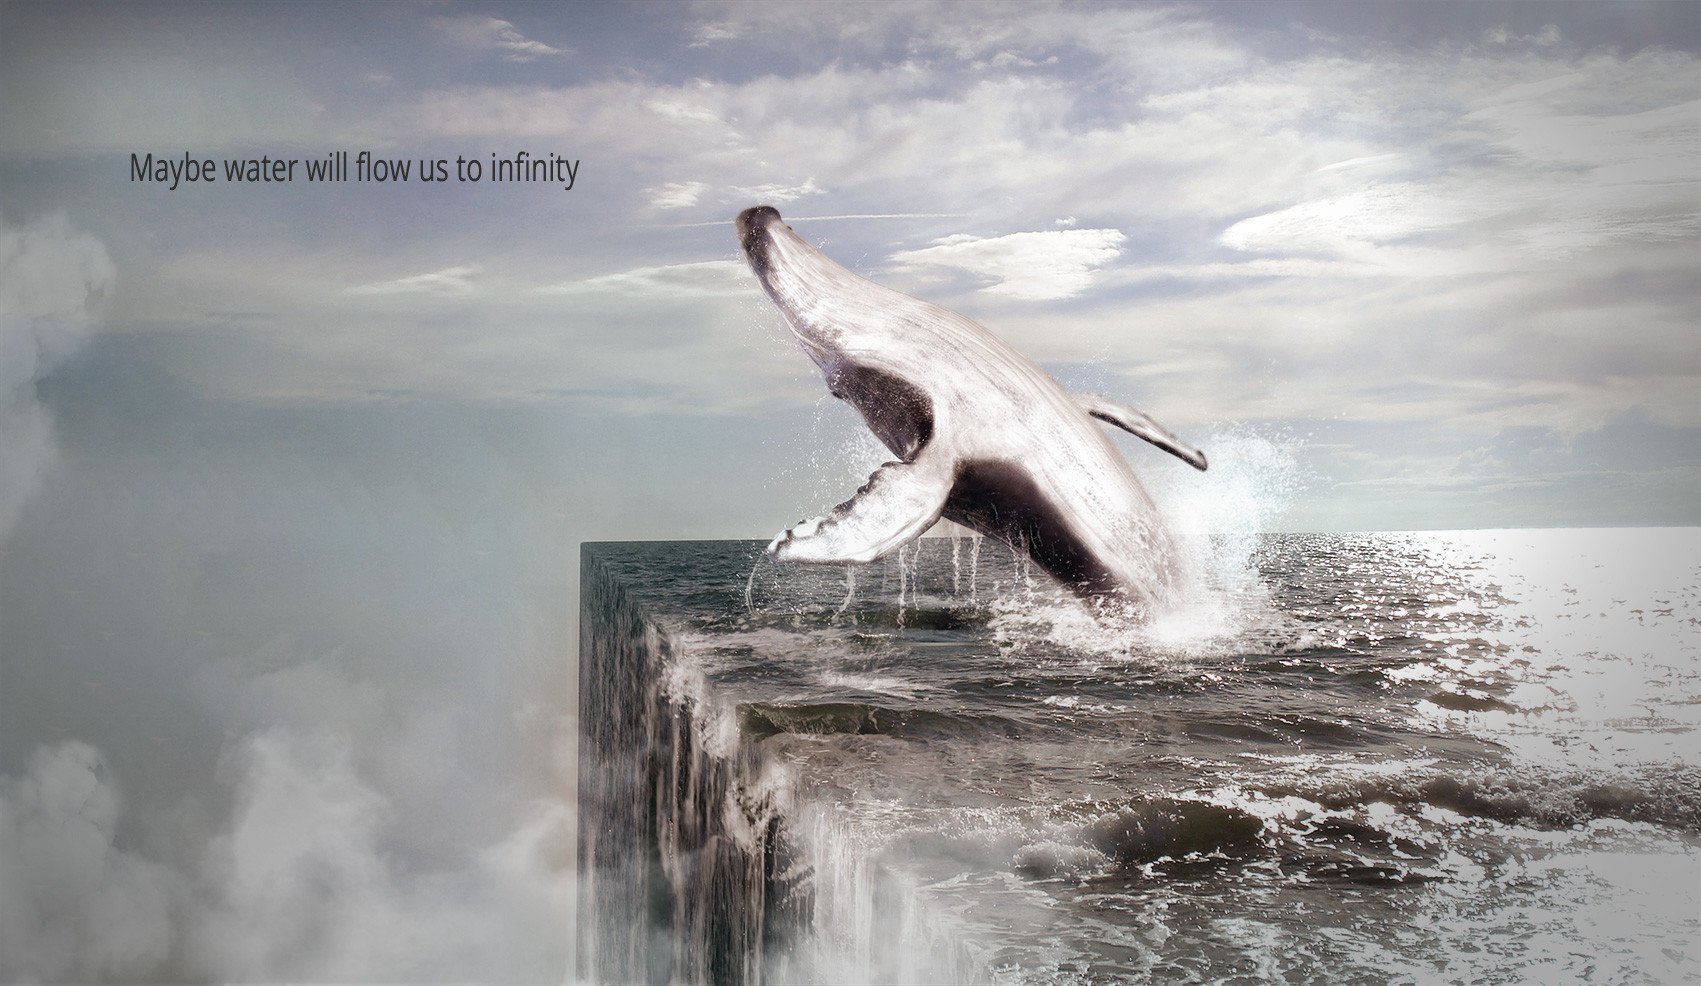 Whale compositing